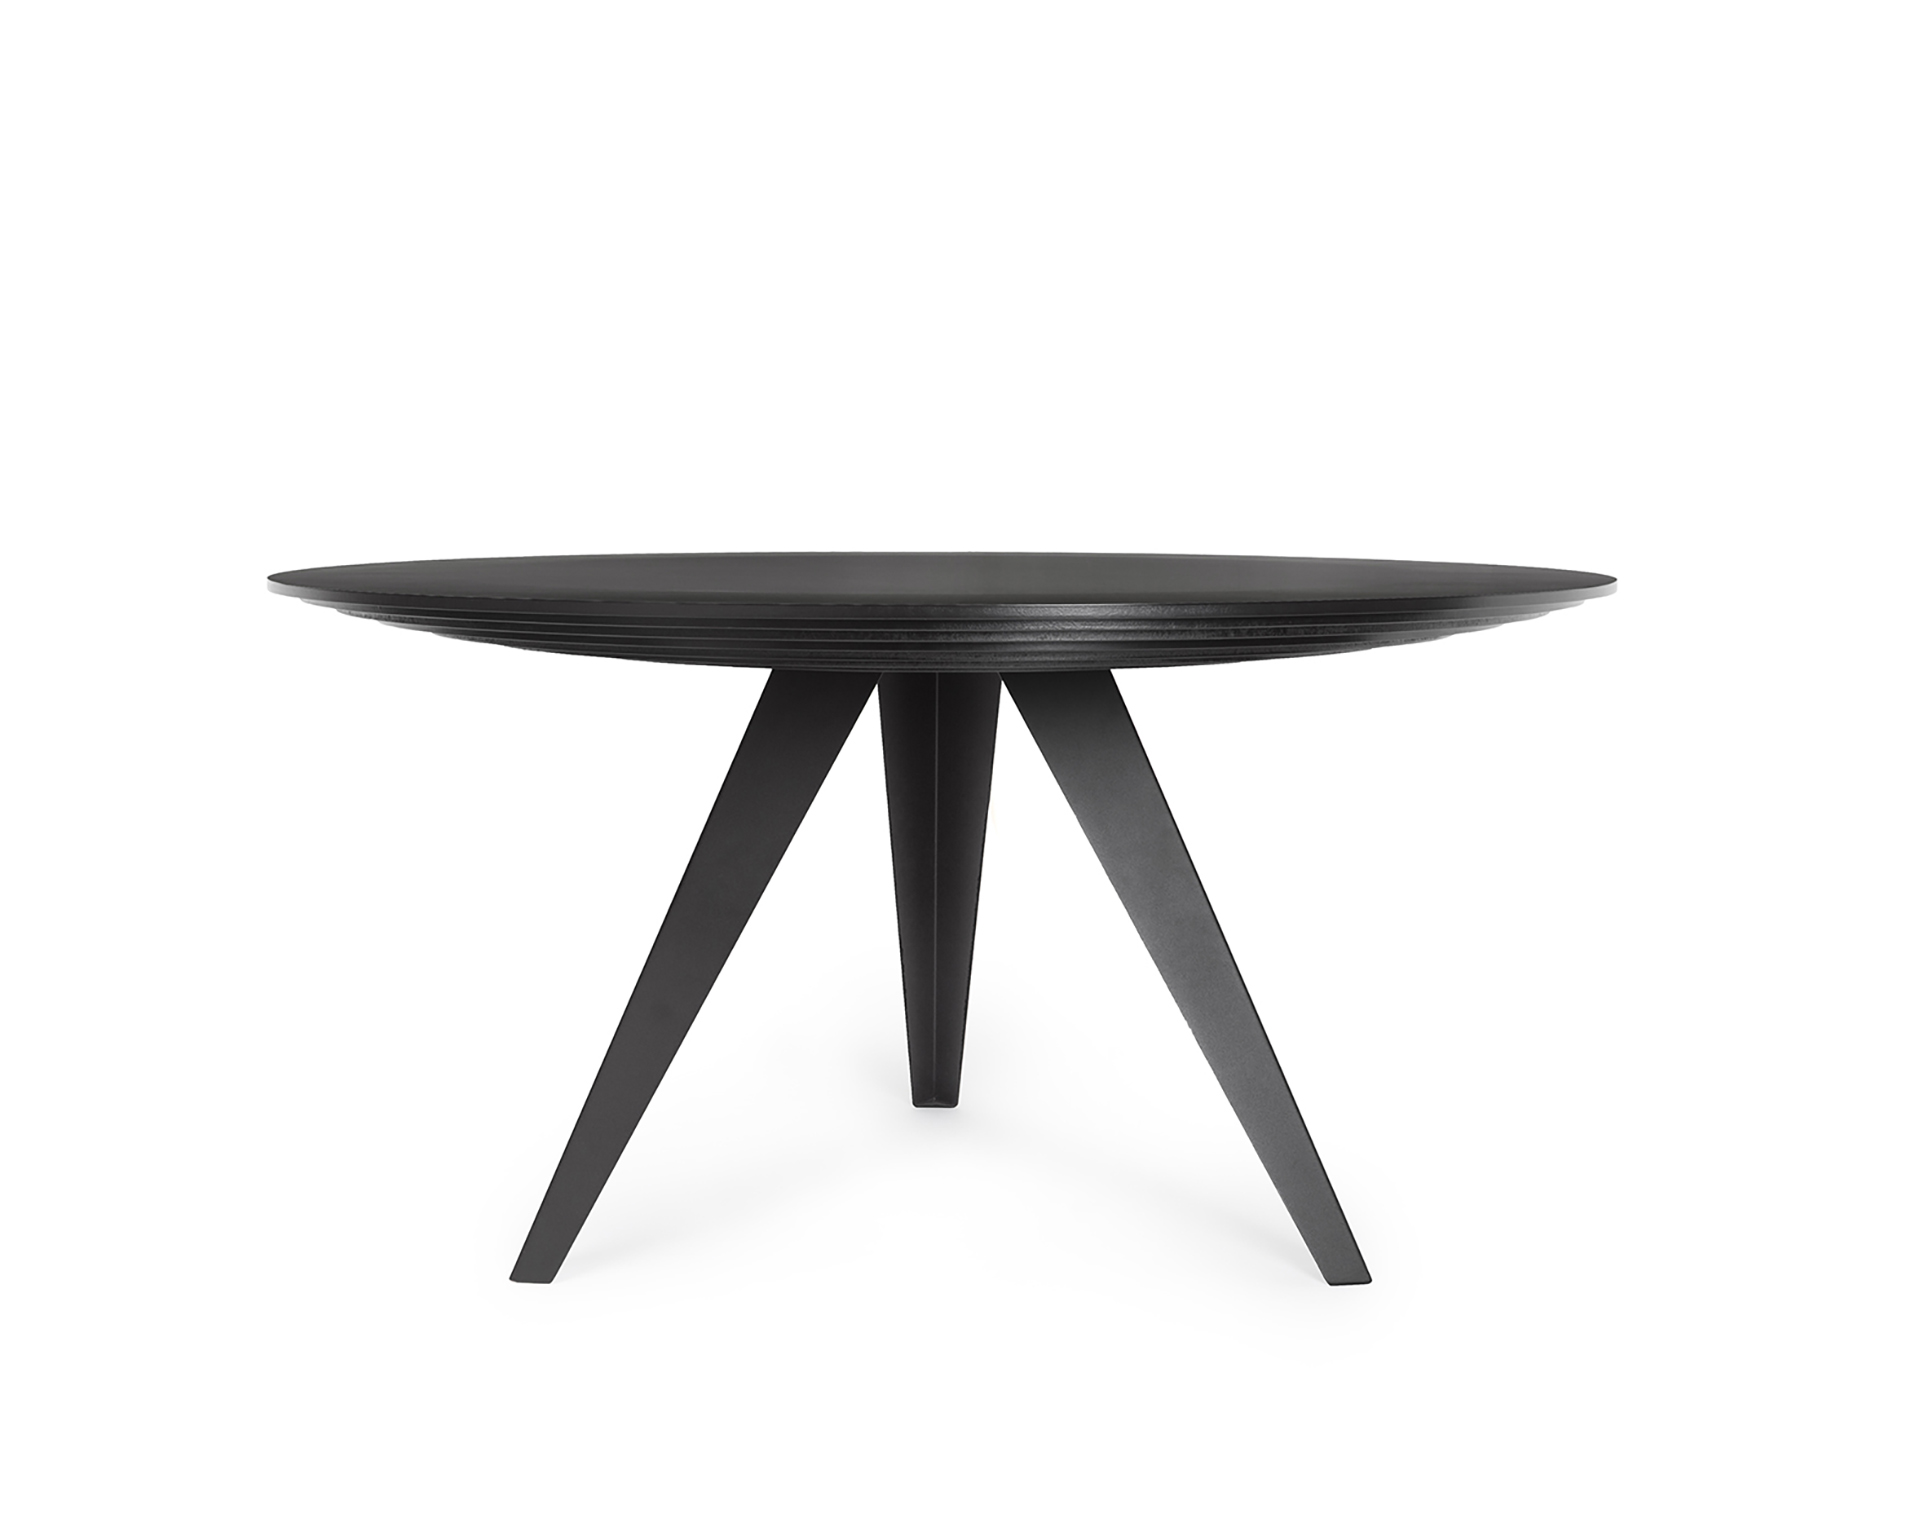 Ronde Tafel Diameter 150 Cm.Ronde Eettafel Belly L Kees Marcelis L Odesi Your Dutch Design